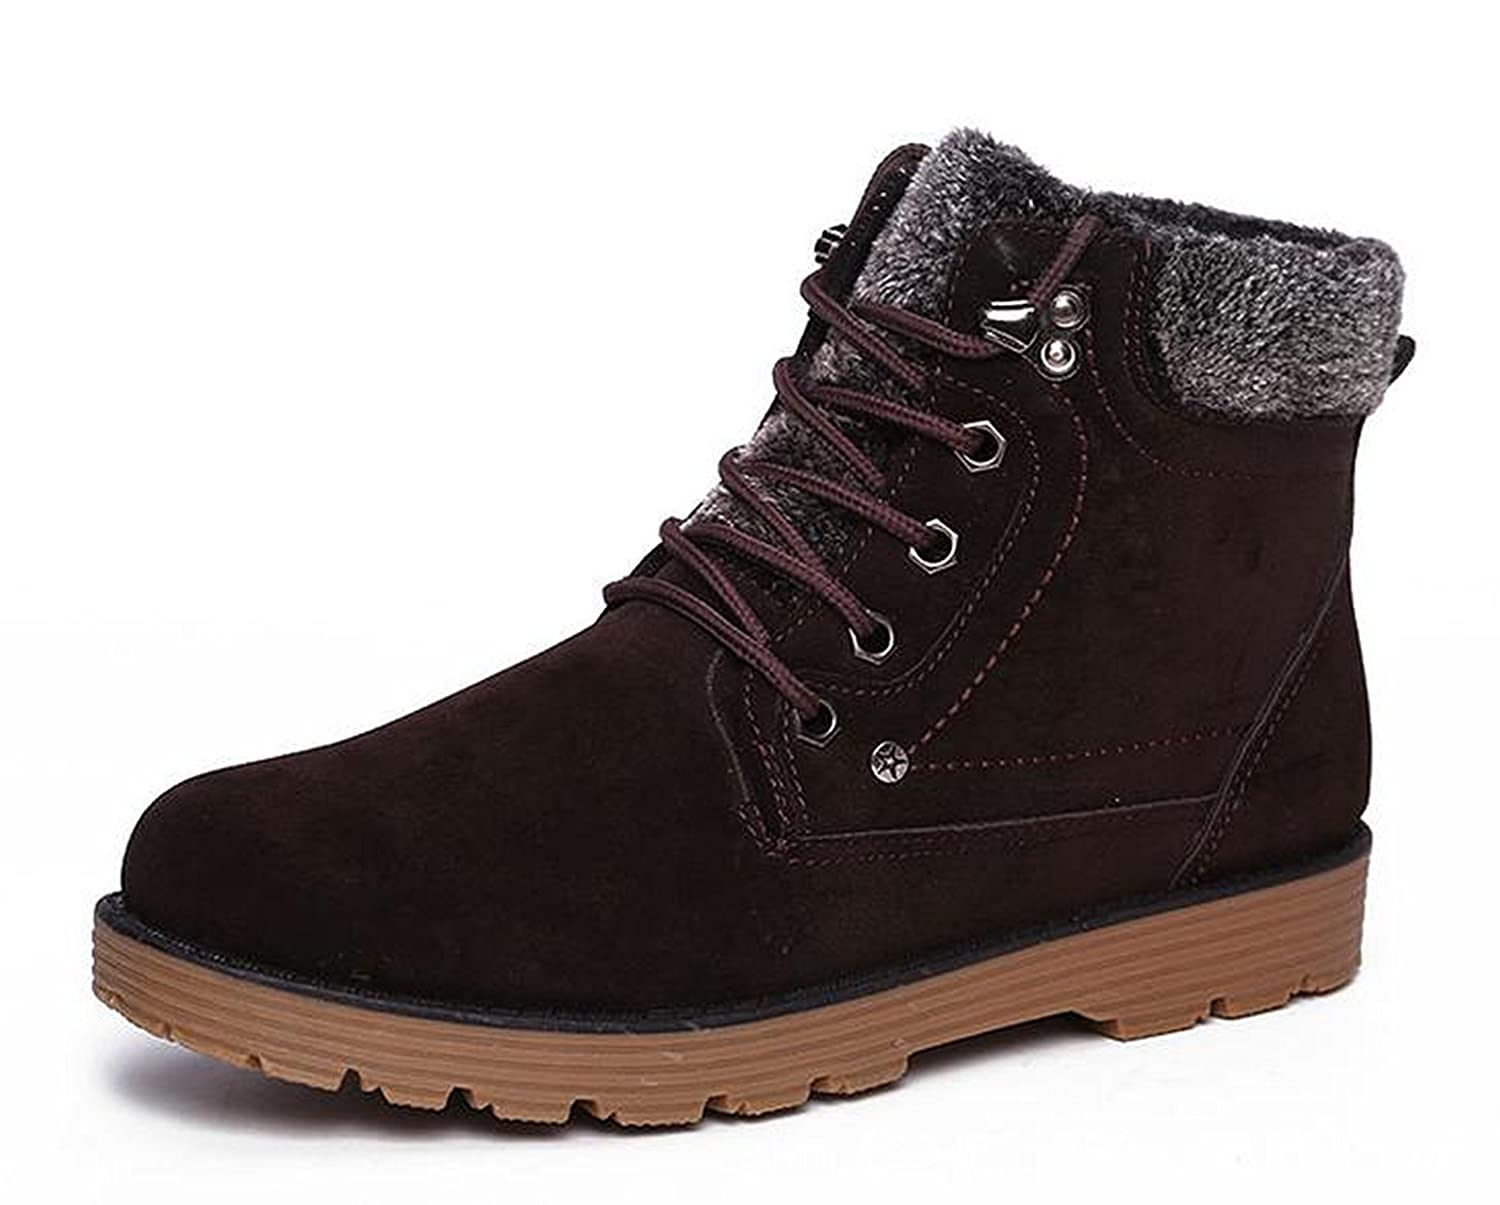 Yougao® Men's Winter Lace-up Ankle Waterproof Fur Snow Boots